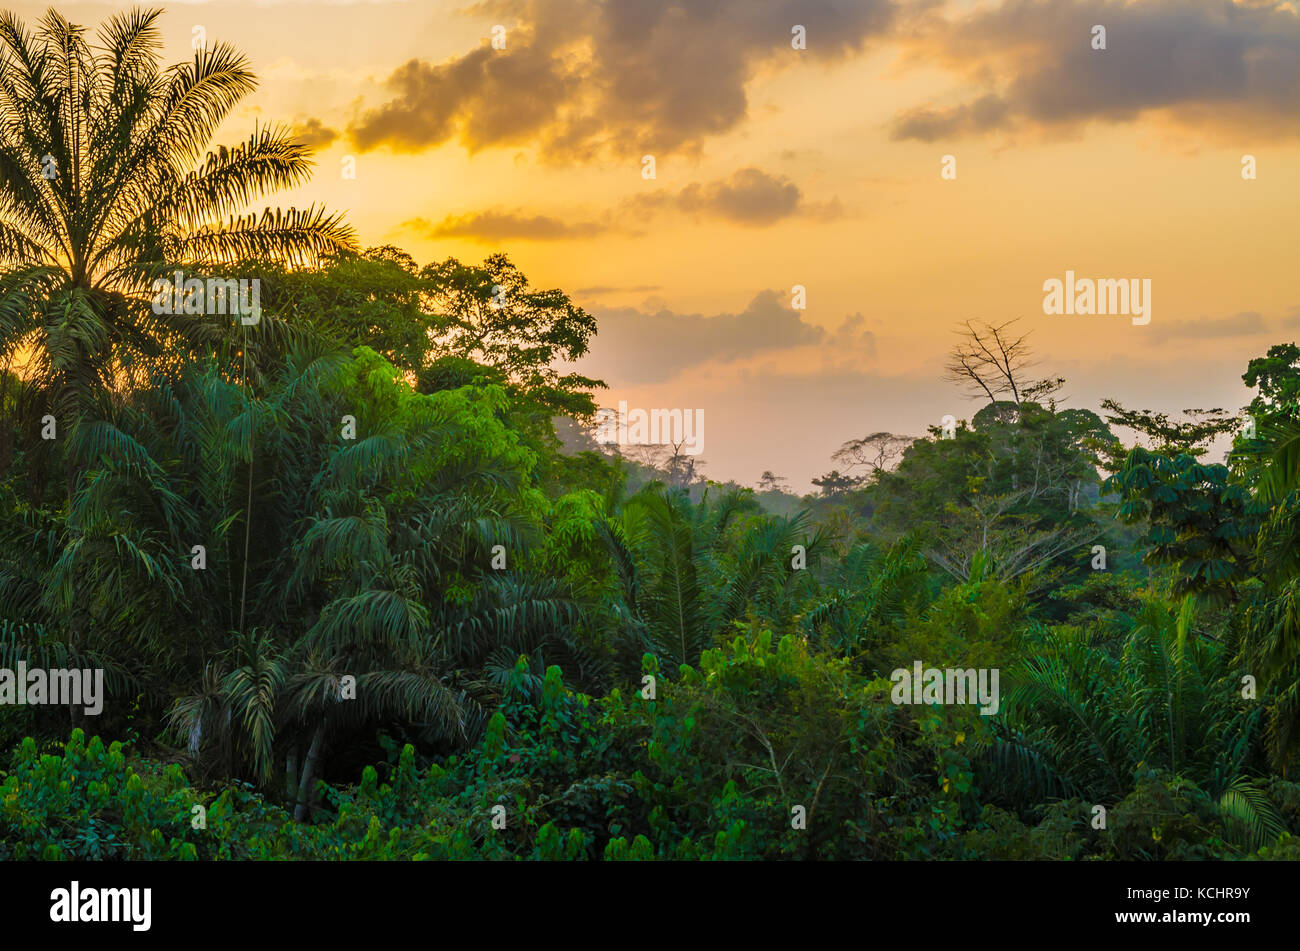 Beautiful lush green West African rain forest during amazing sunset, Liberia, West Africa - Stock Image